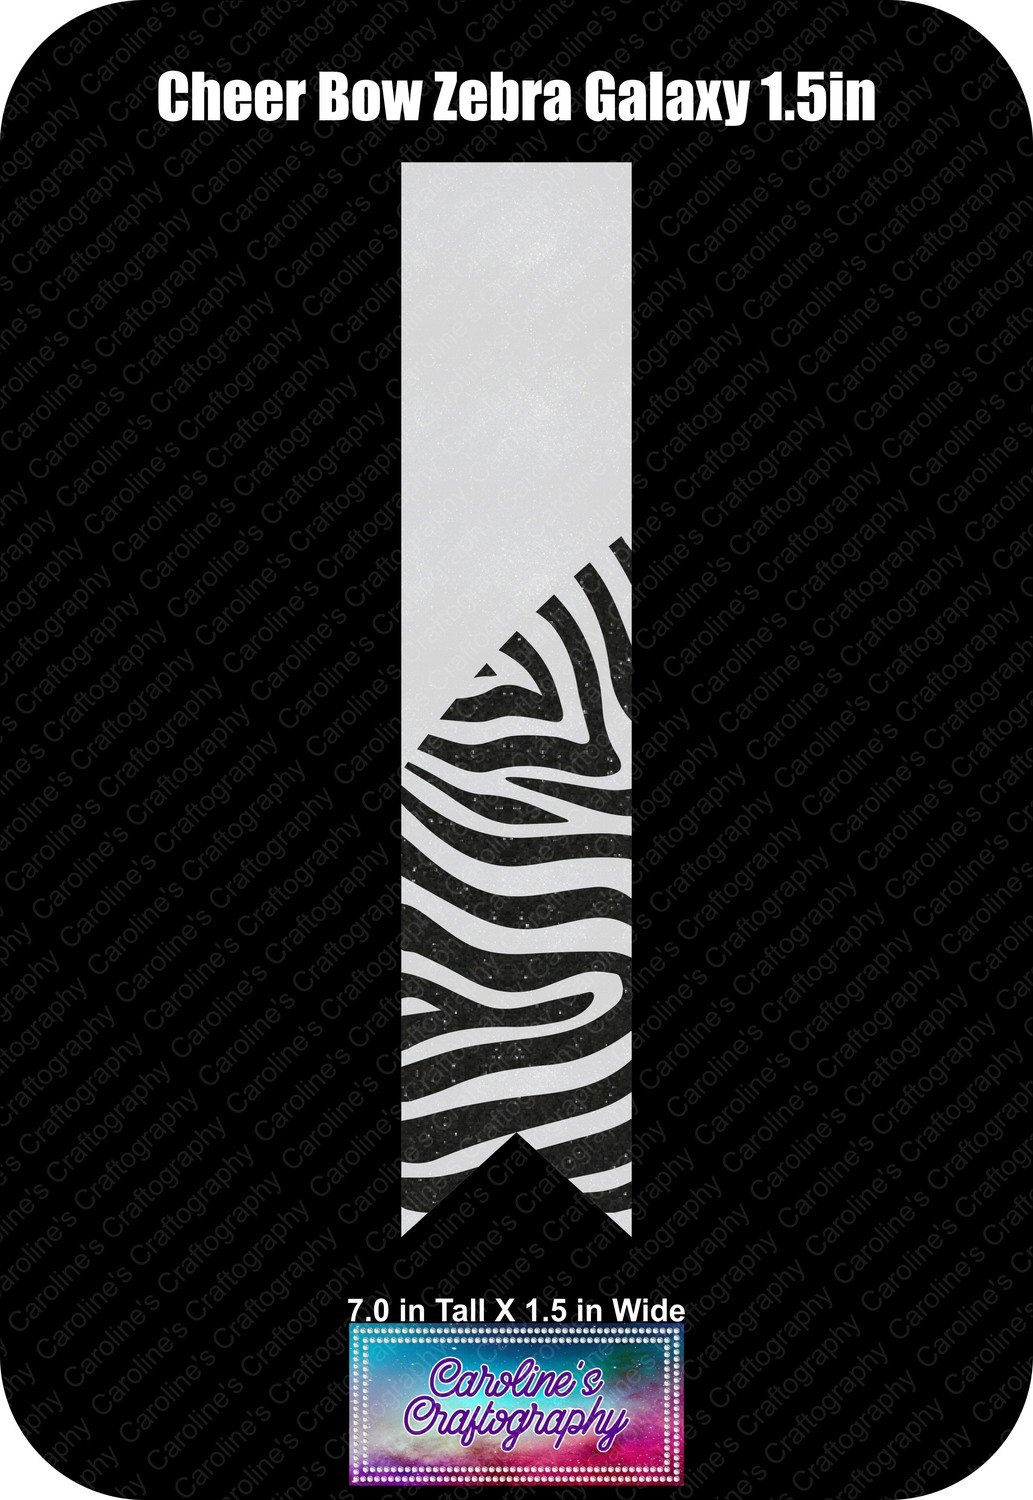 Zebra Galaxy 1.5in Cheer Bow Vinyl